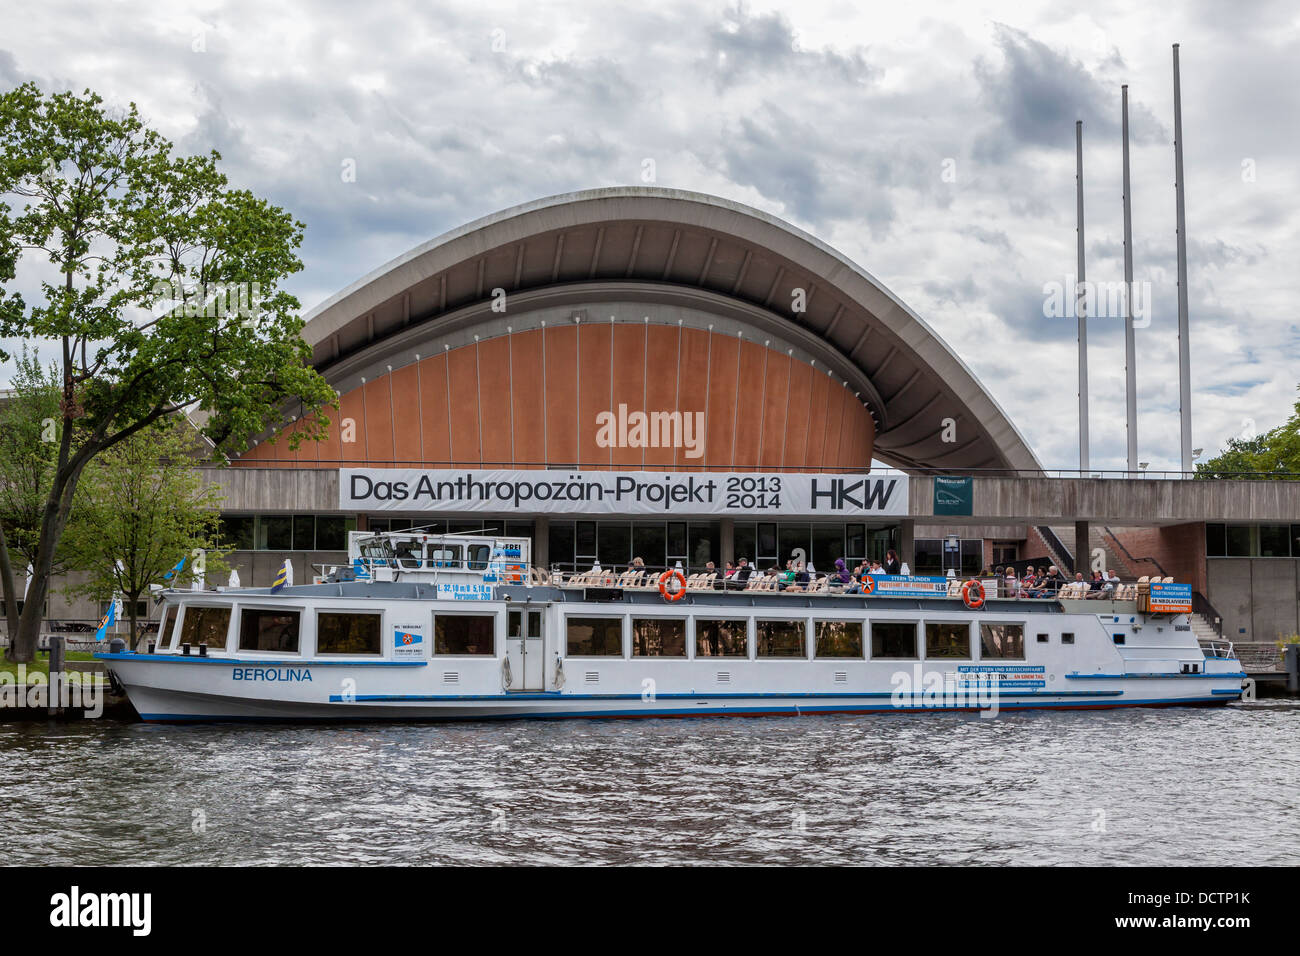 Exterior View of the HKW, Haus der Kulturen der Welt, on the banks of the Spree river, Berlin - Stock Image